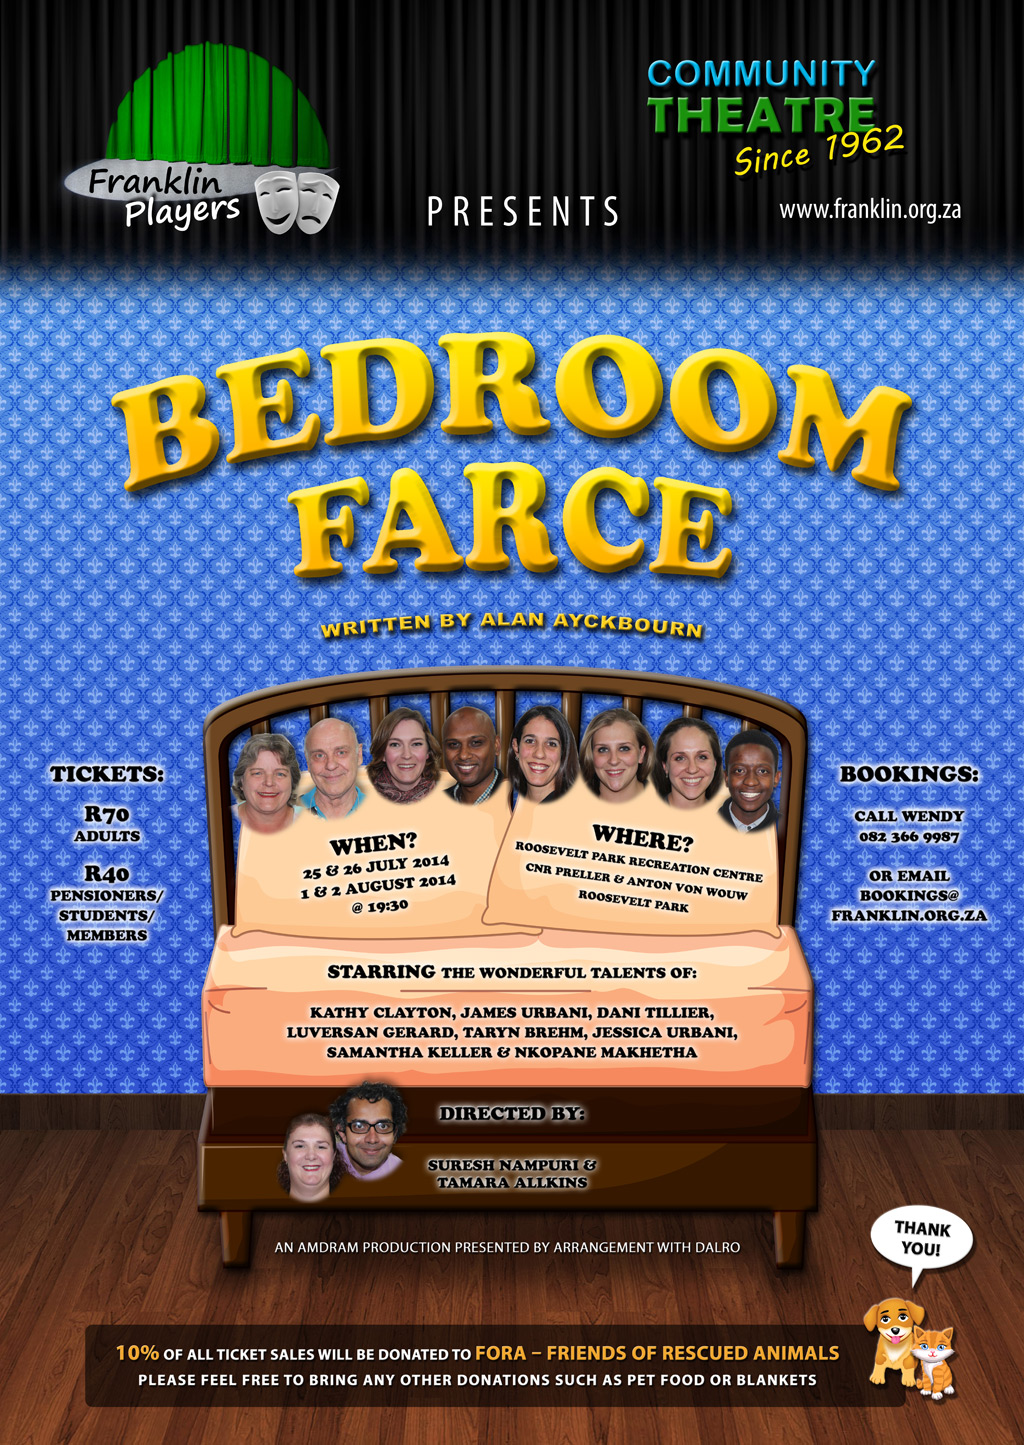 Bedroom Farce by Alan Ayckbourn, performed by the Franklin Players